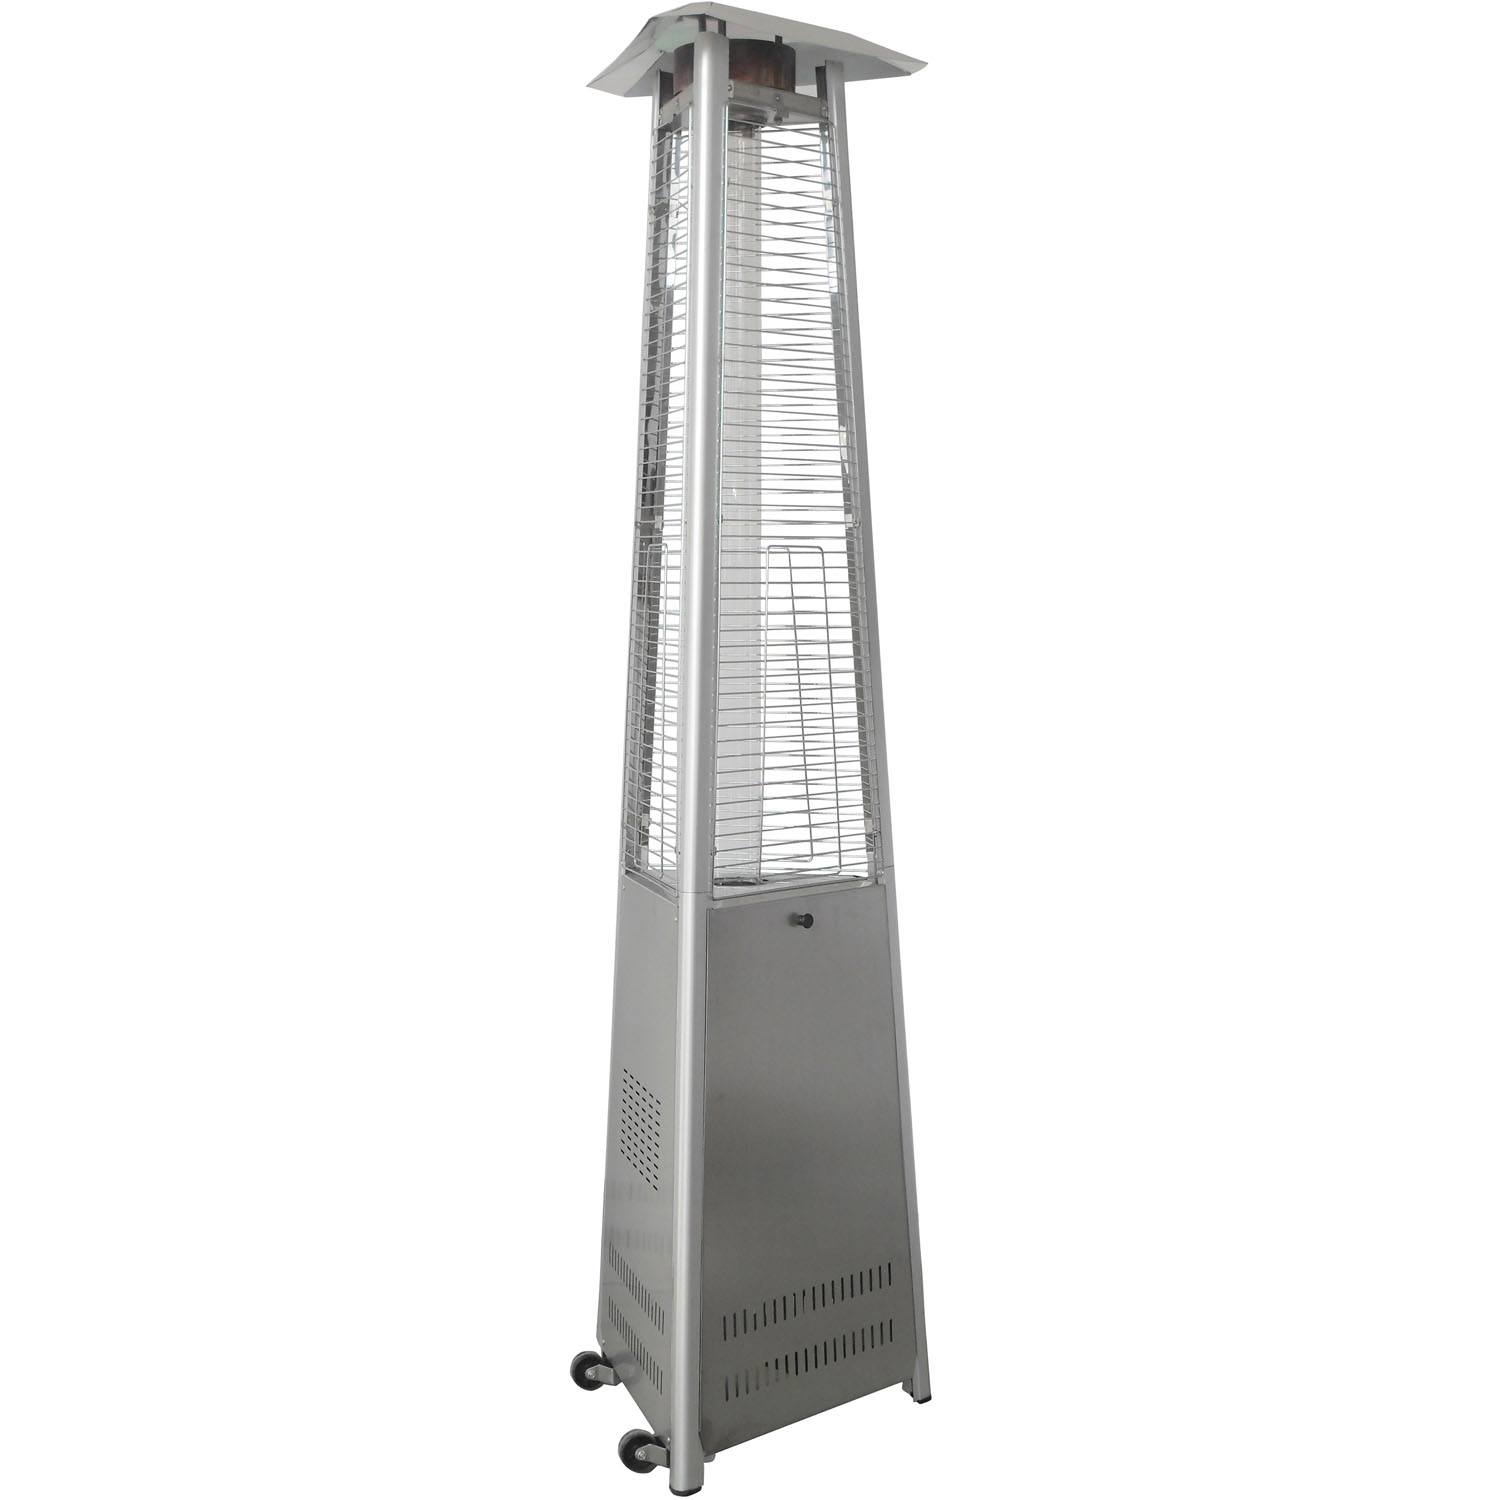 Cambridge 7 Ft. 42,000 BTU Triangle Propane Patio Heater in Stainless Steel by Cambridge